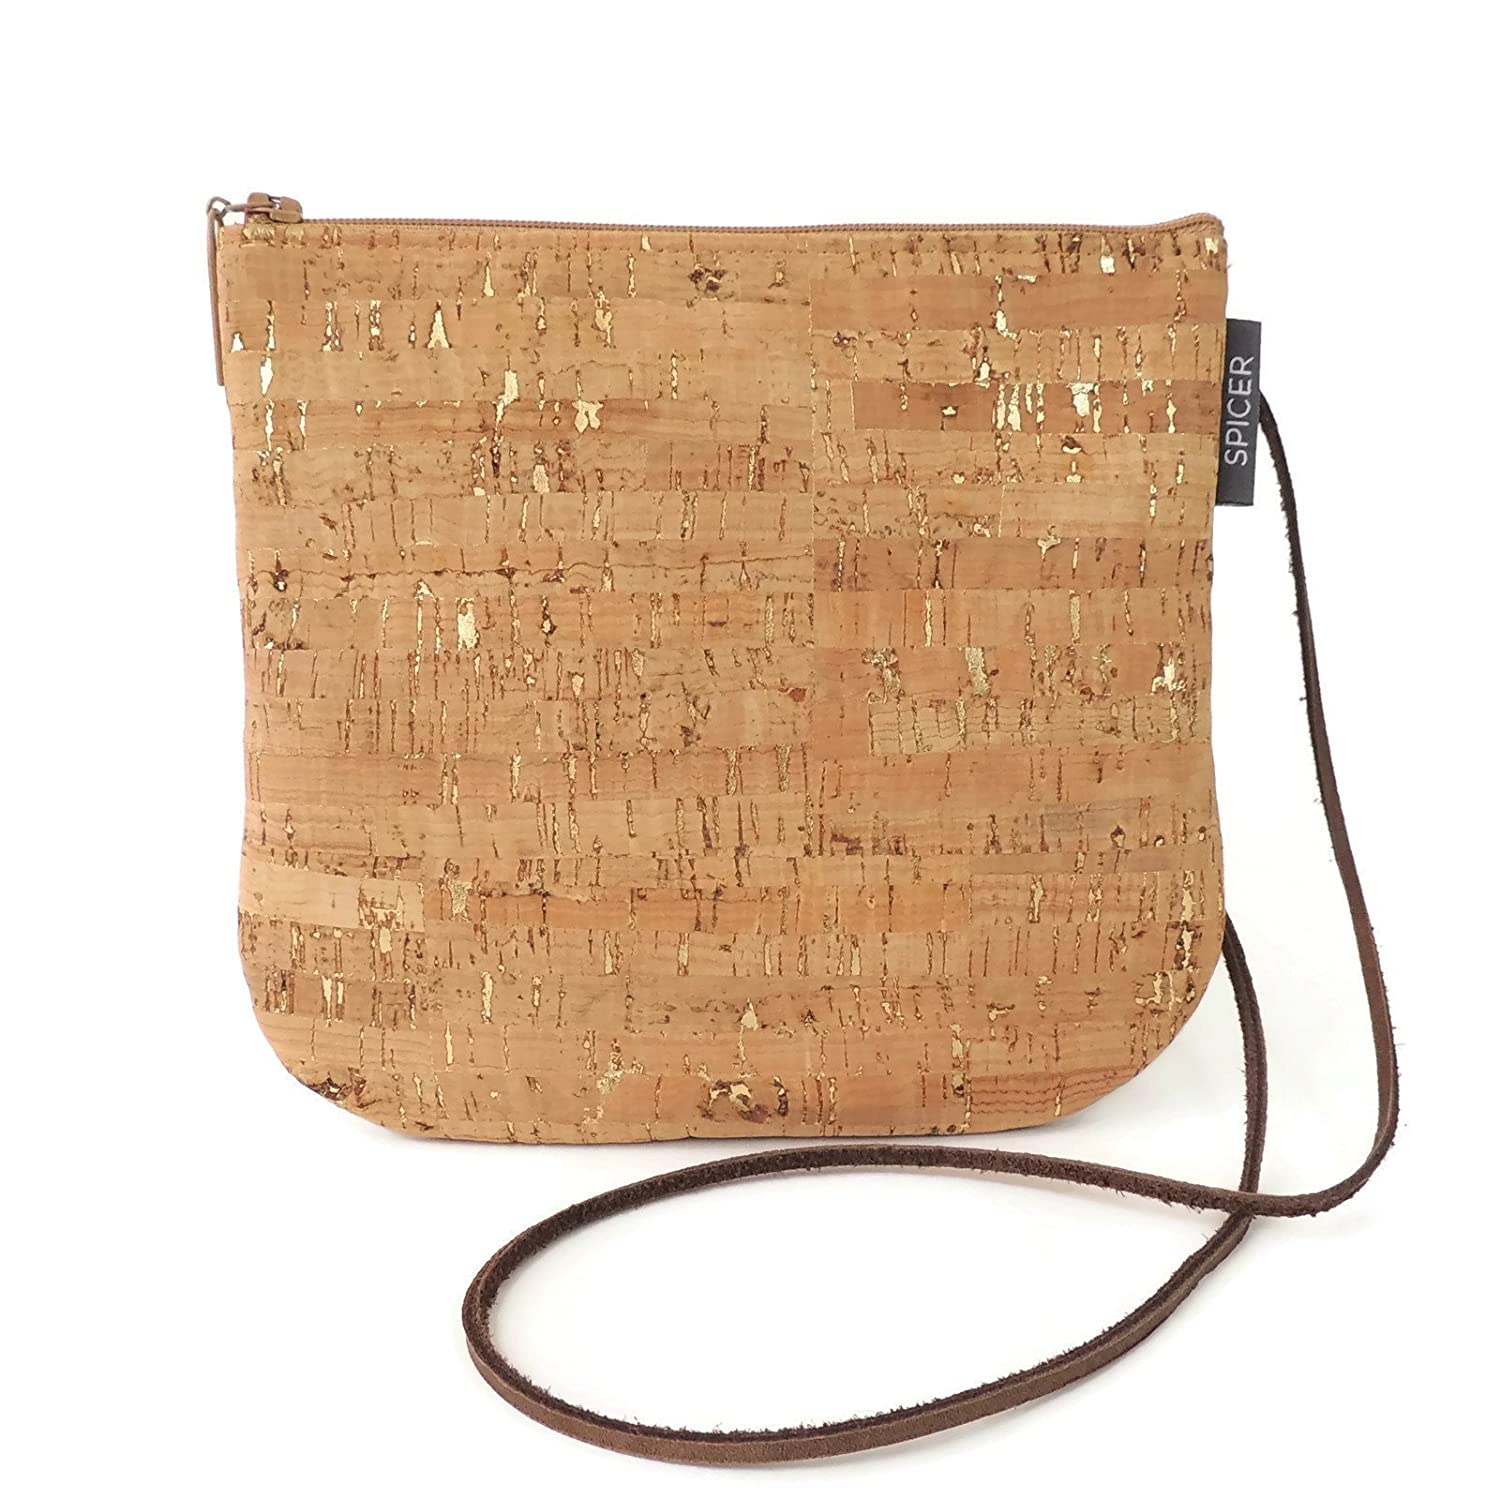 Mini Cross-body Bag in Gold Flecked Cork